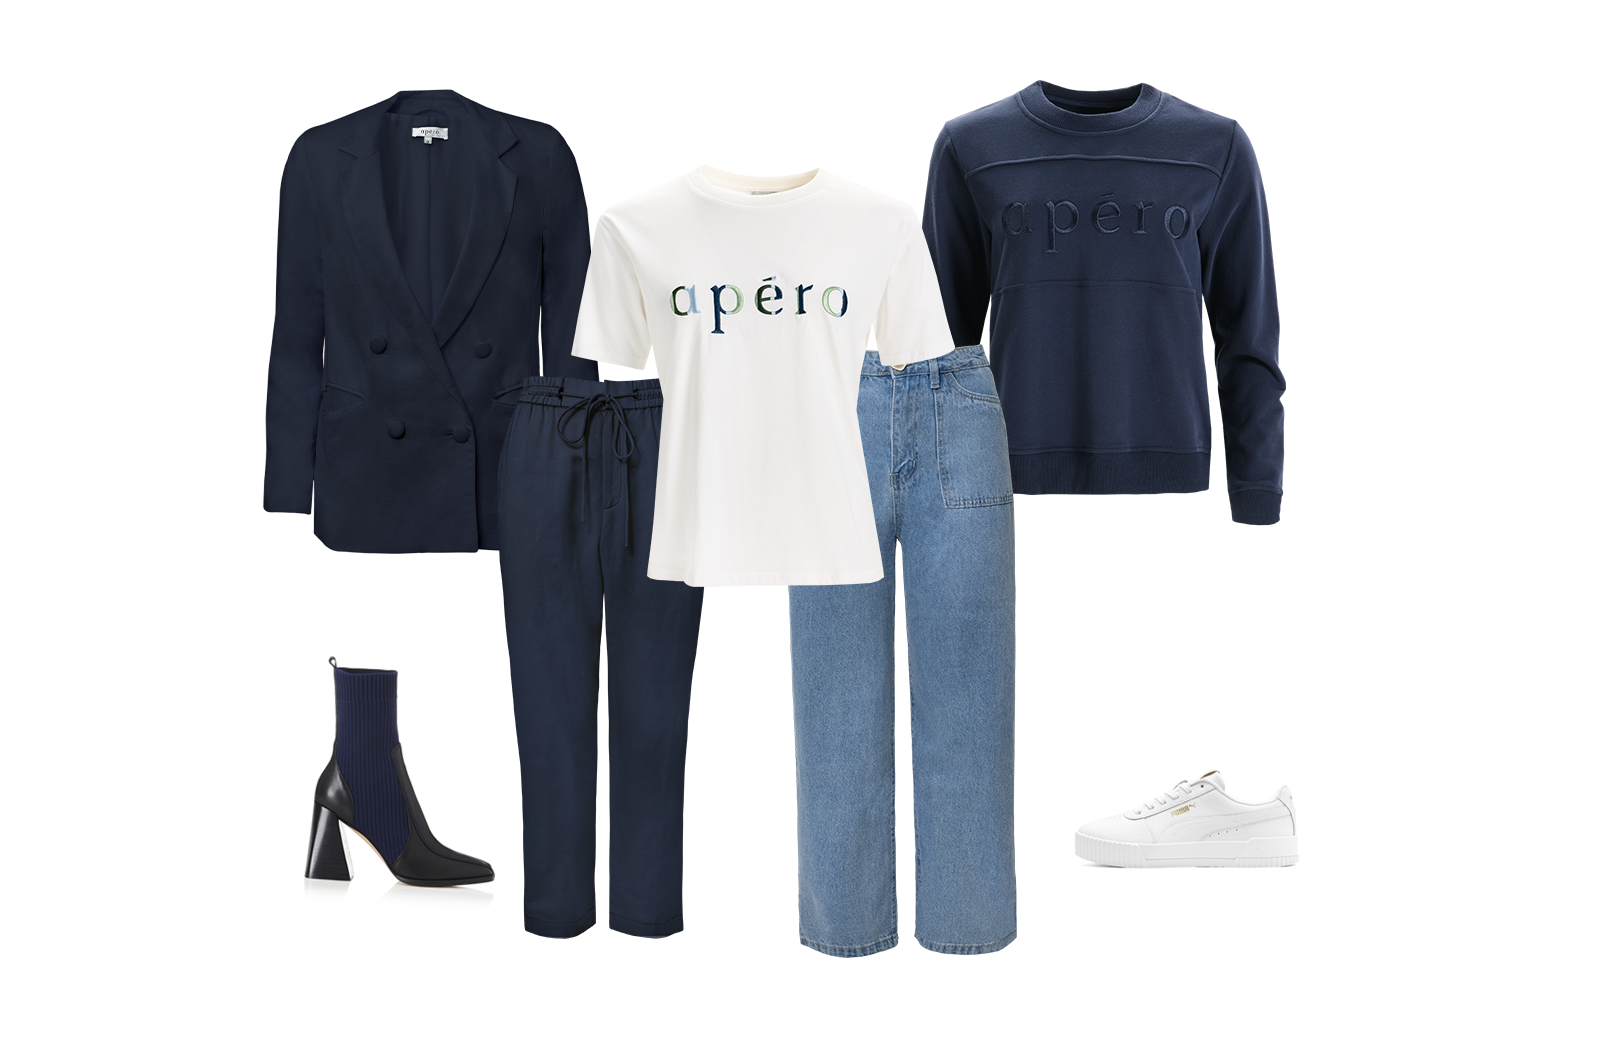 Journey Embroidered Tee and Navy Embroidered Panel Jumper